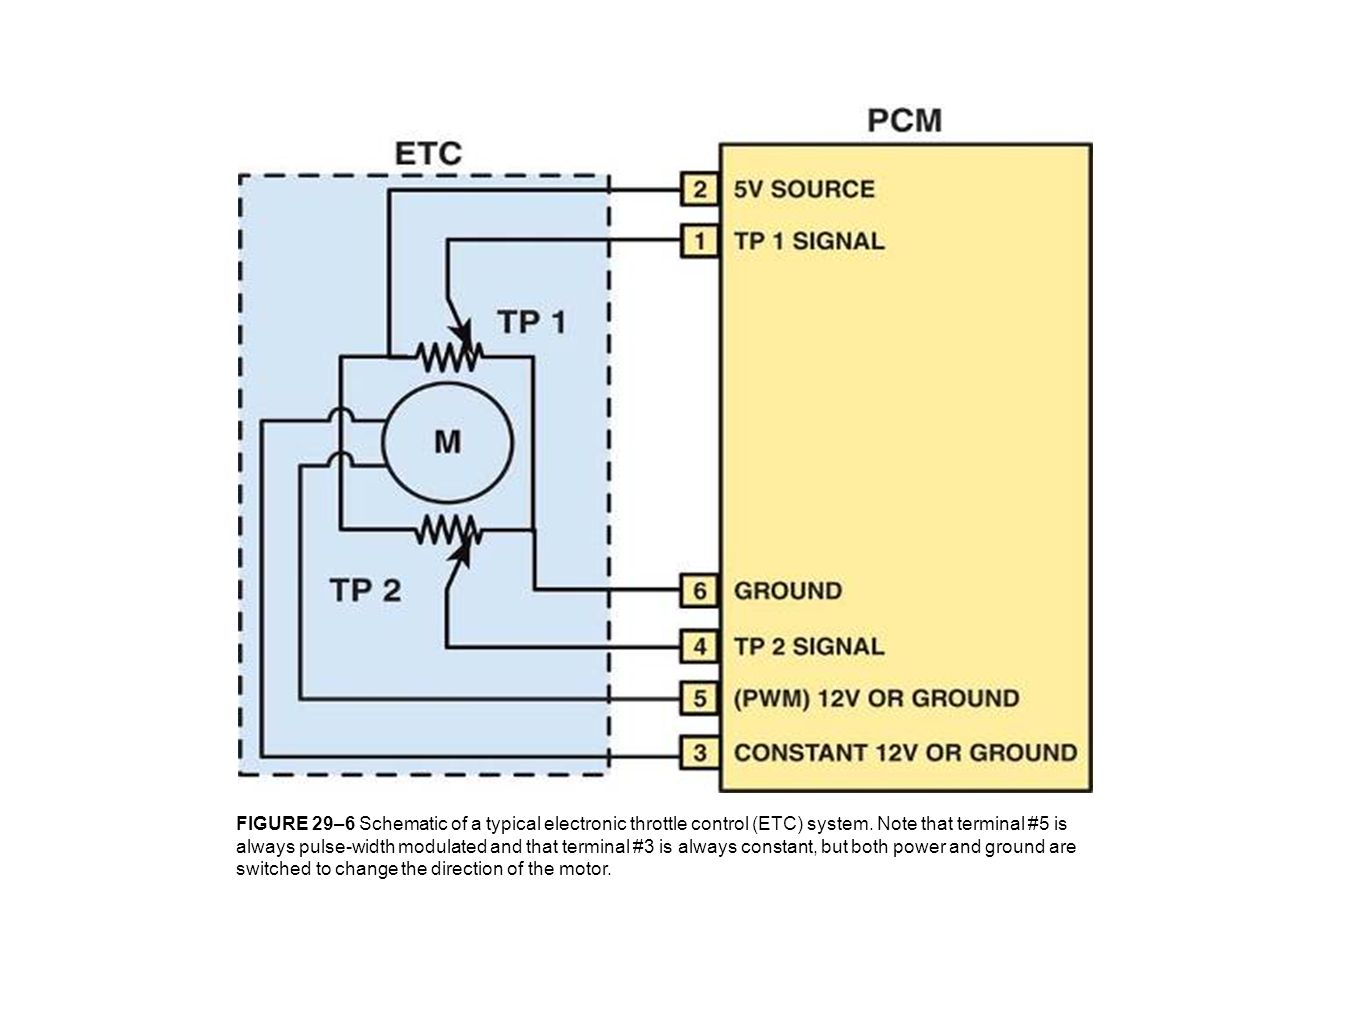 FIGURE 29–6 Schematic of a typical electronic throttle control (ETC) system.